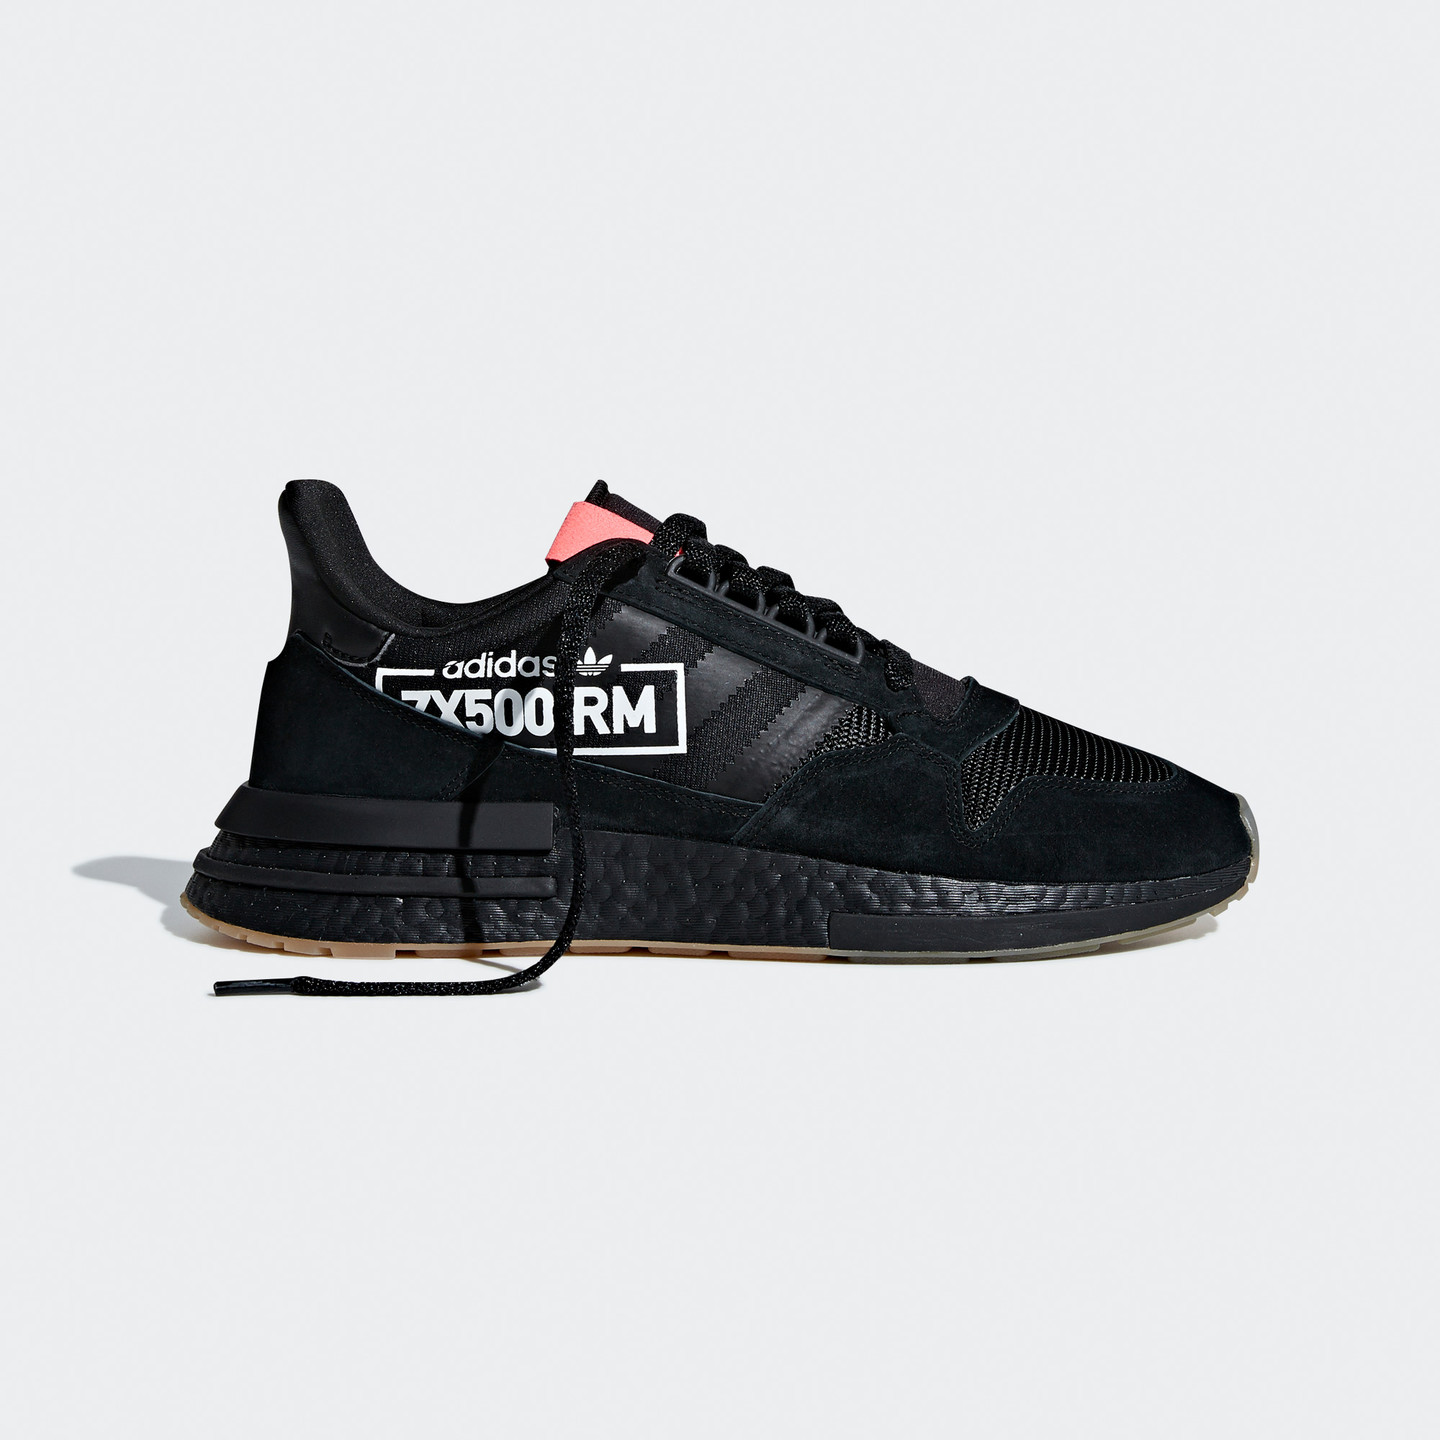 Adidas ZX 500 RM Boost Core Black / Bluebird BB7443